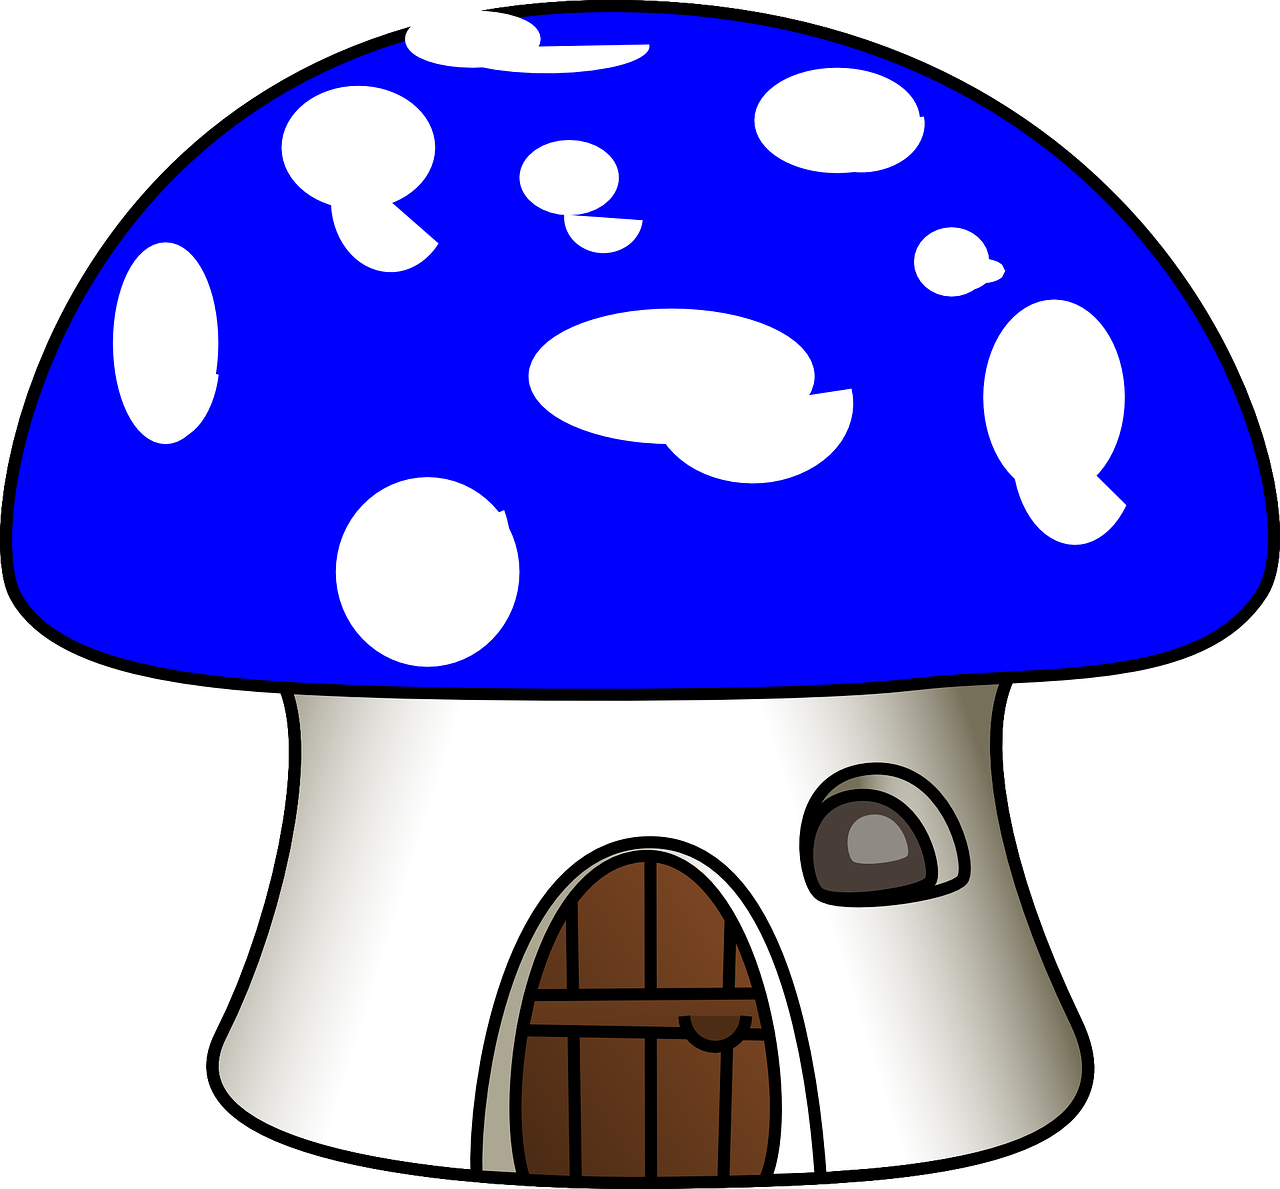 Mushroom house igloo door. Mushrooms vector art jpg download